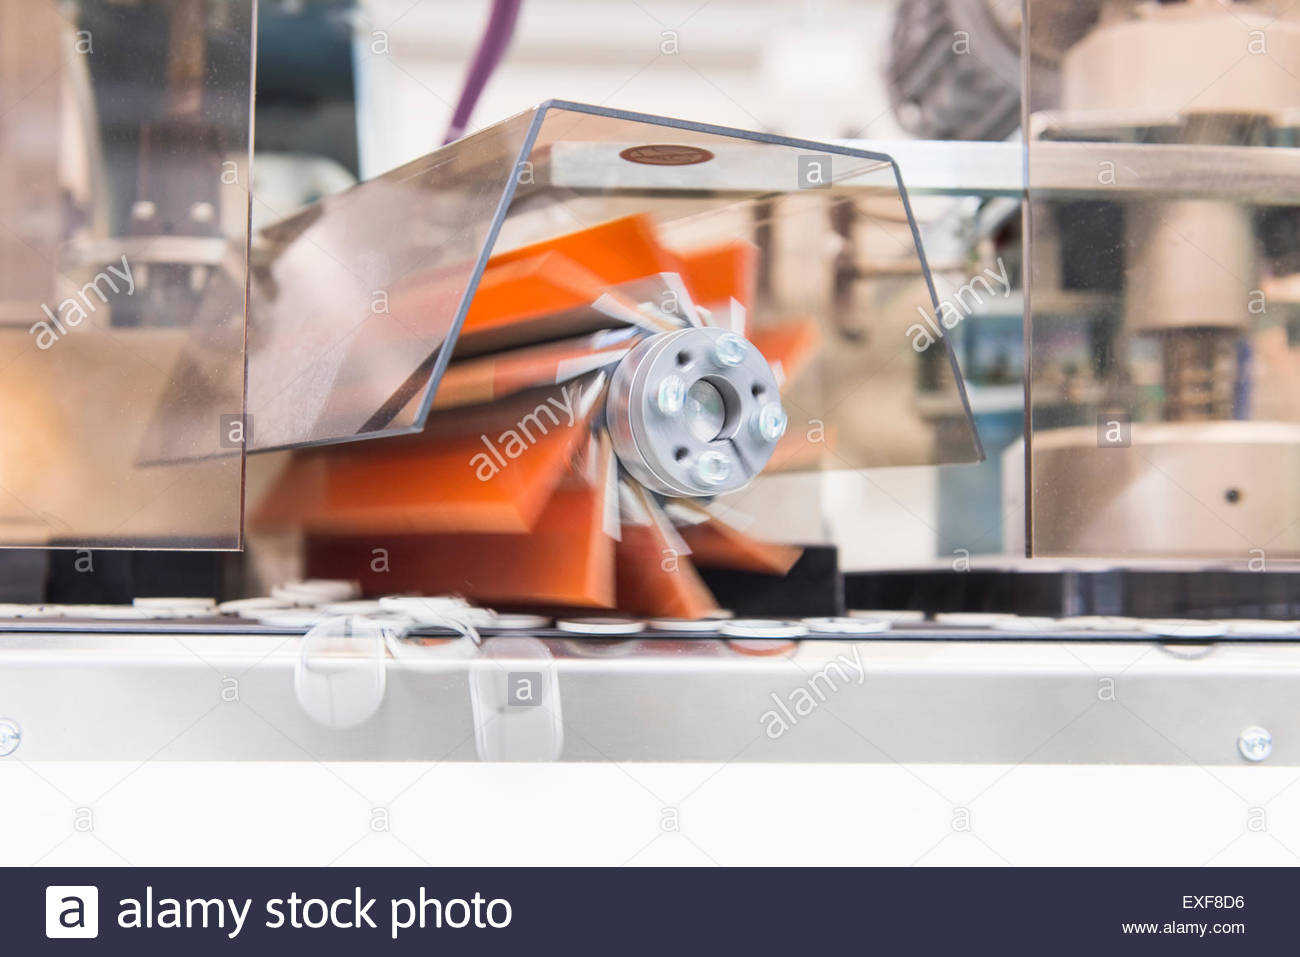 Close up of rotating equipment sorting products in factory - Stock Image